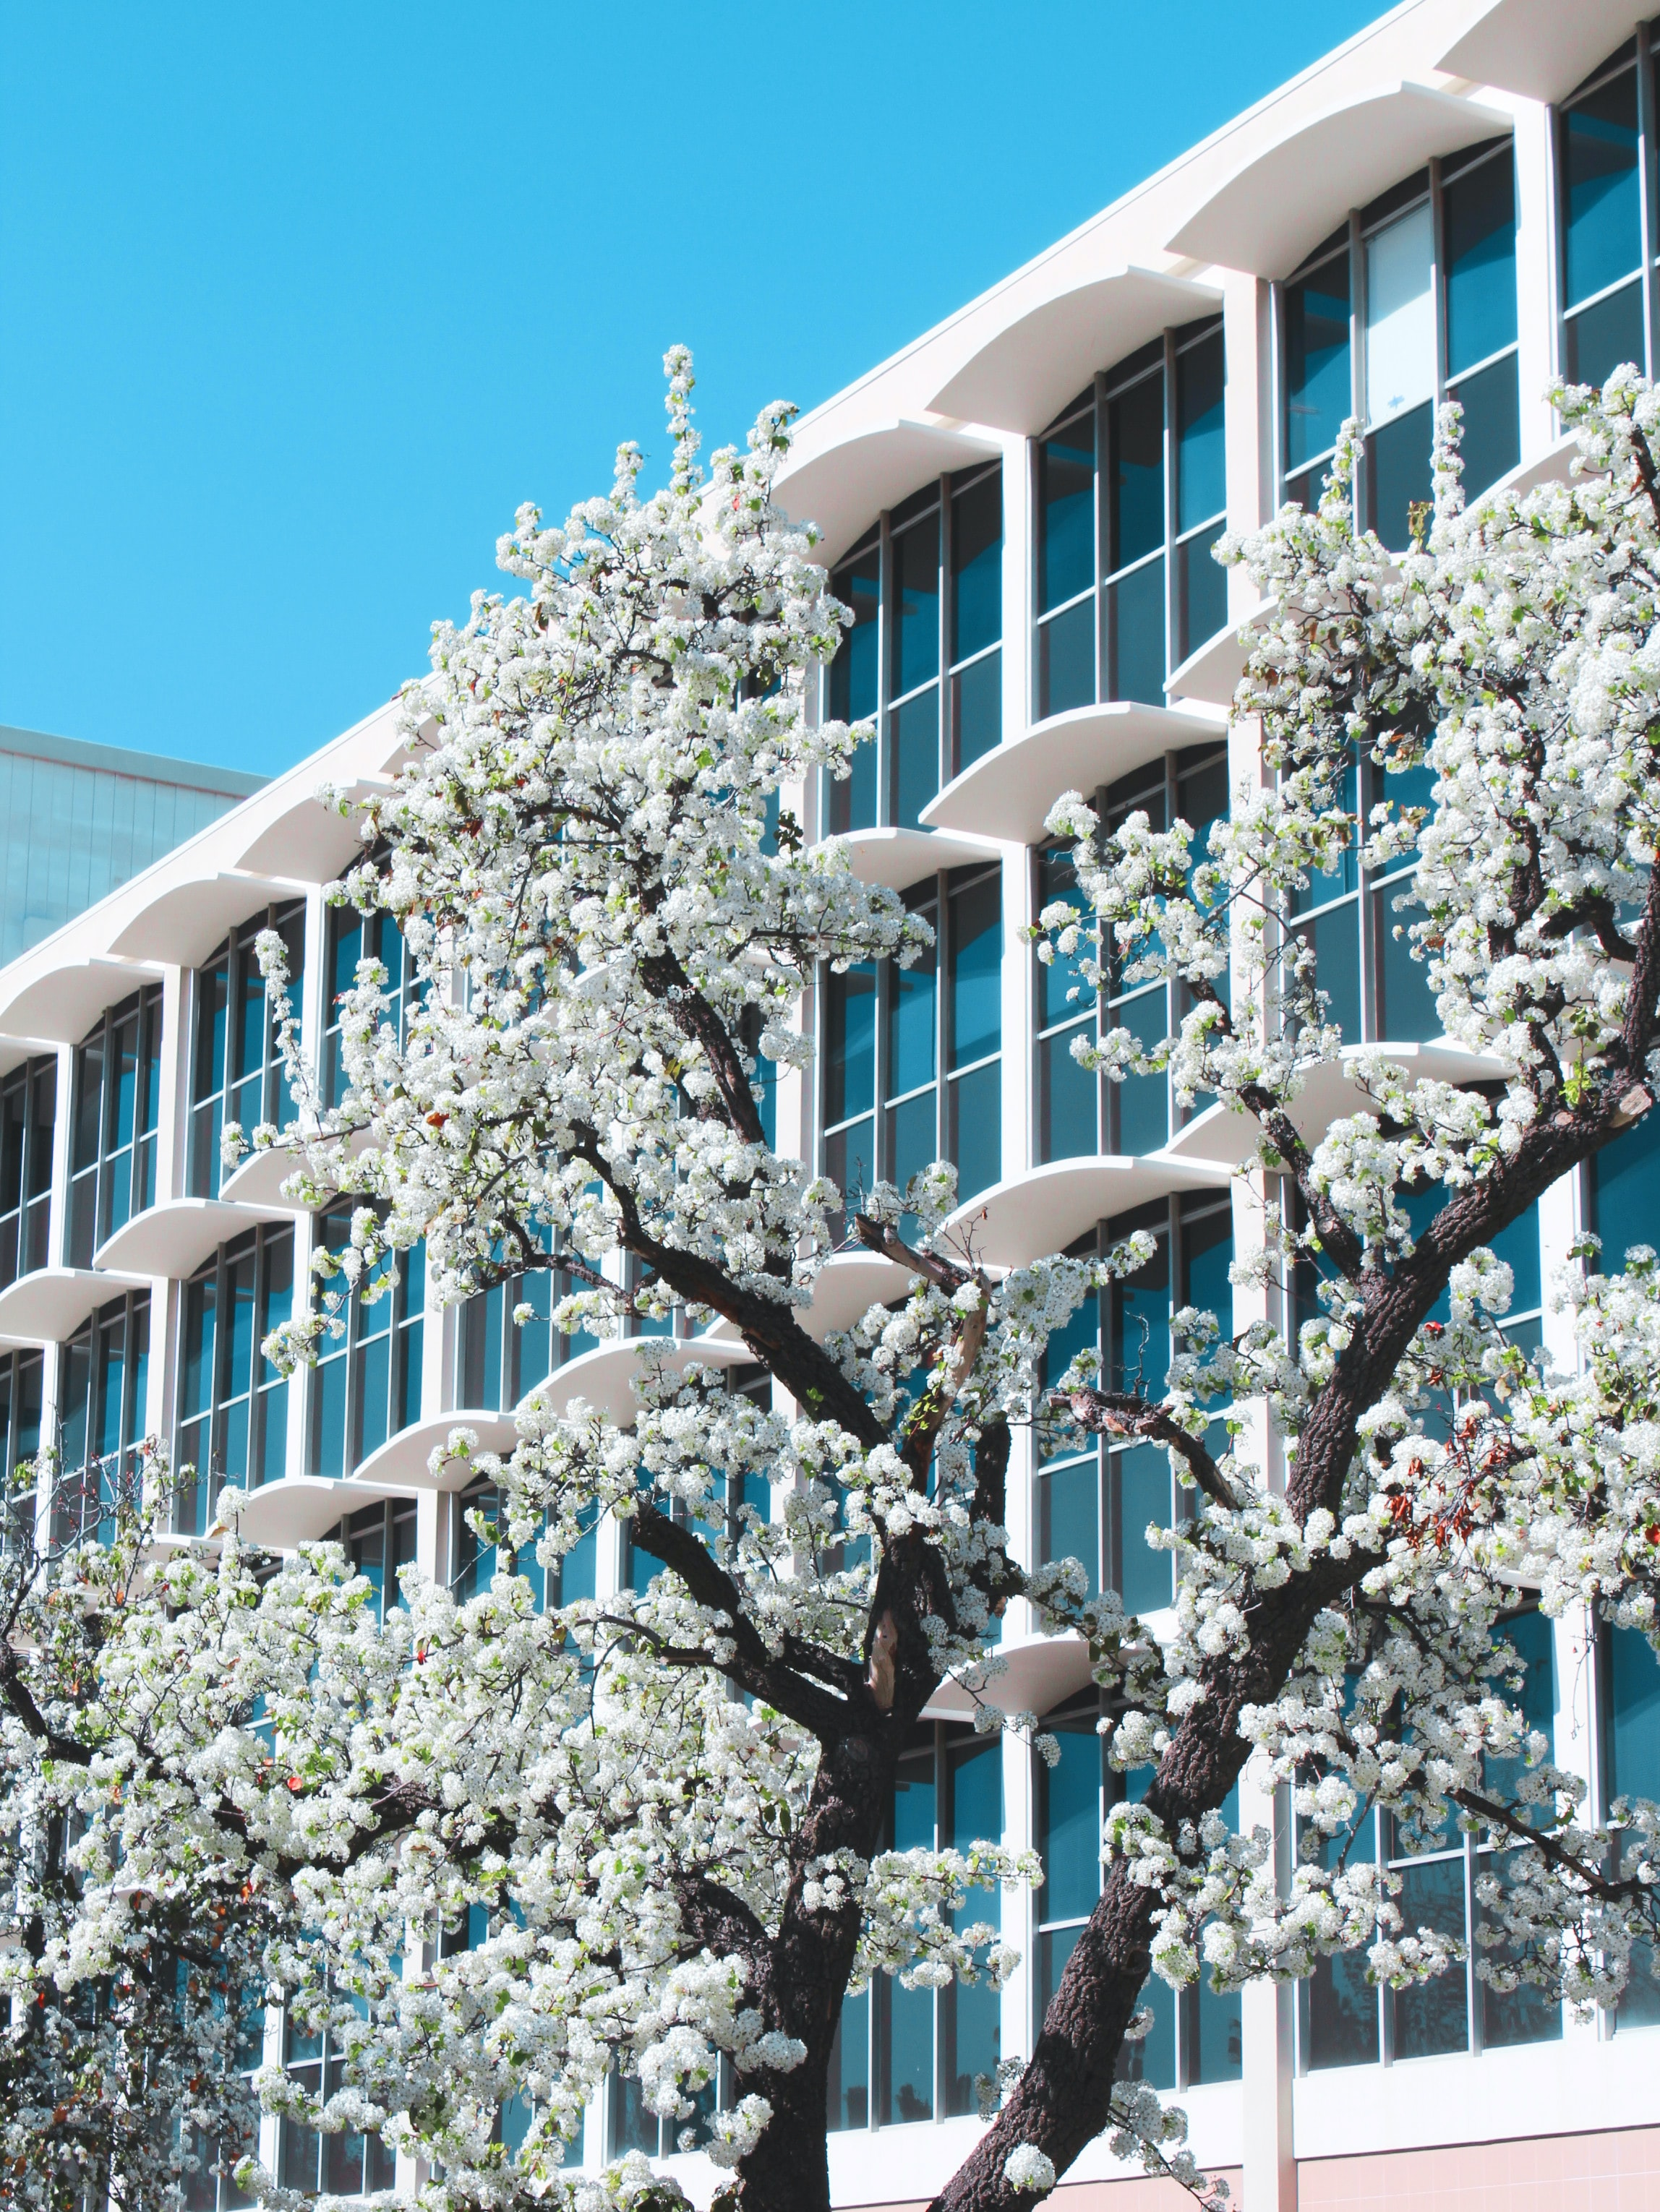 white petaled flowers in front of building